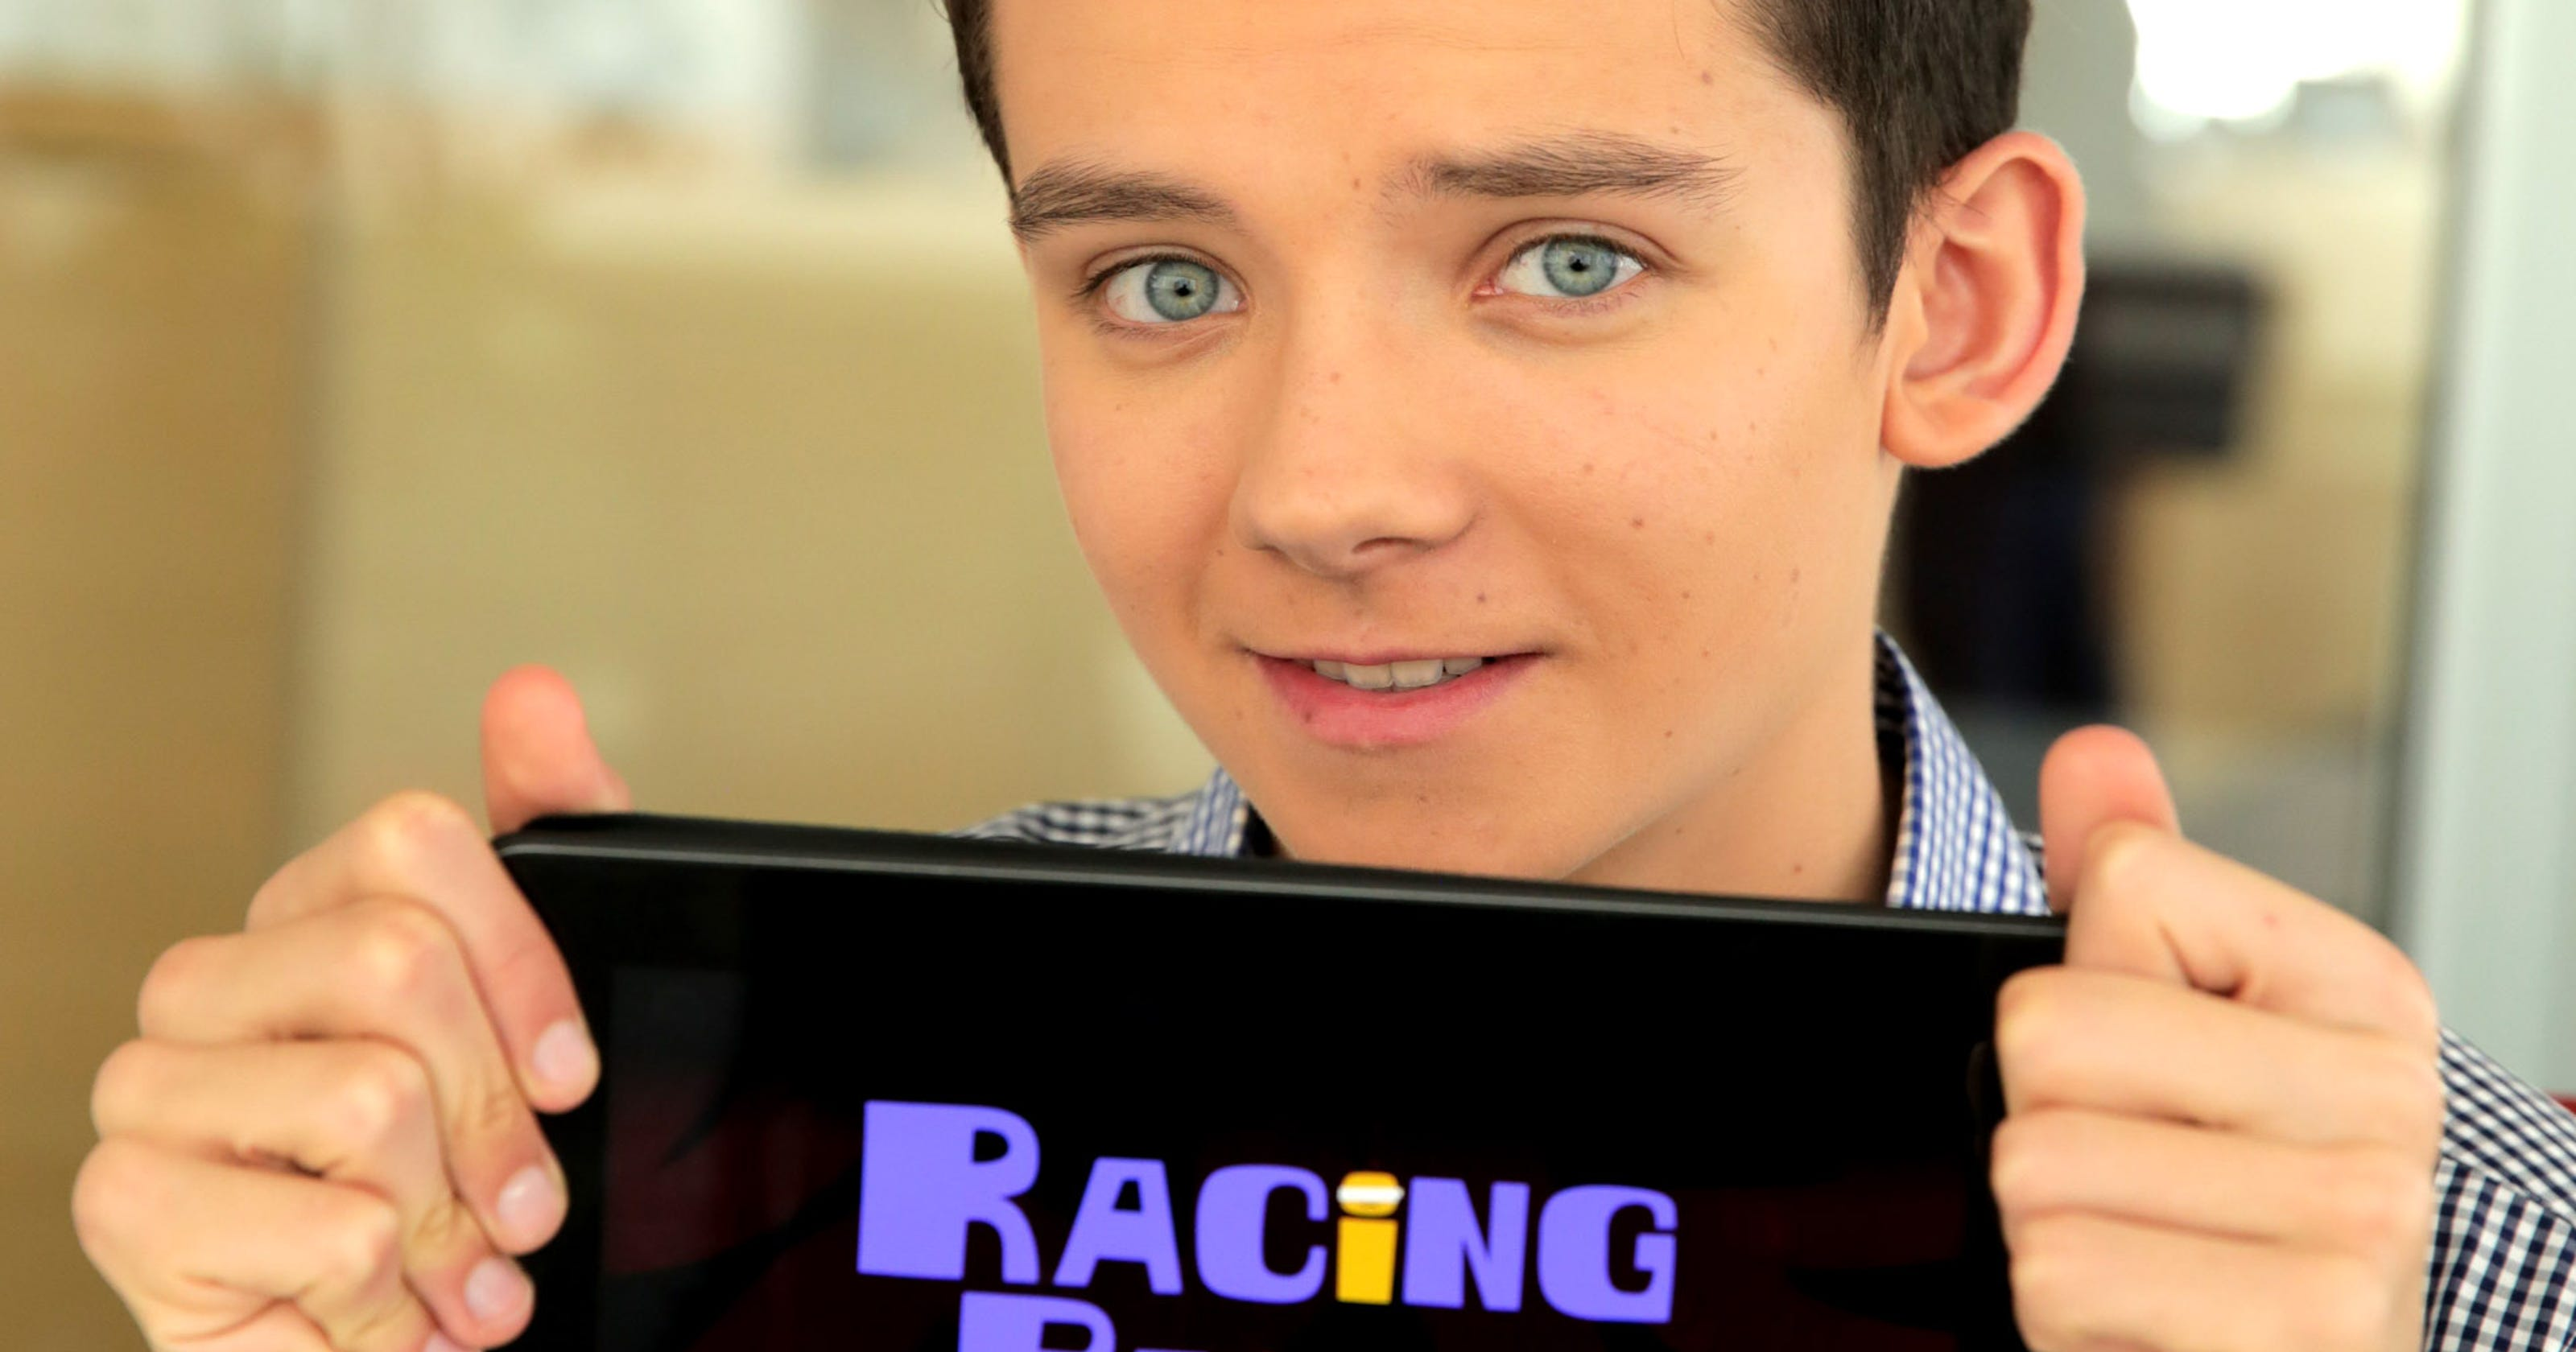 Talking Your Tech: Asa Butterfield races with iPad app